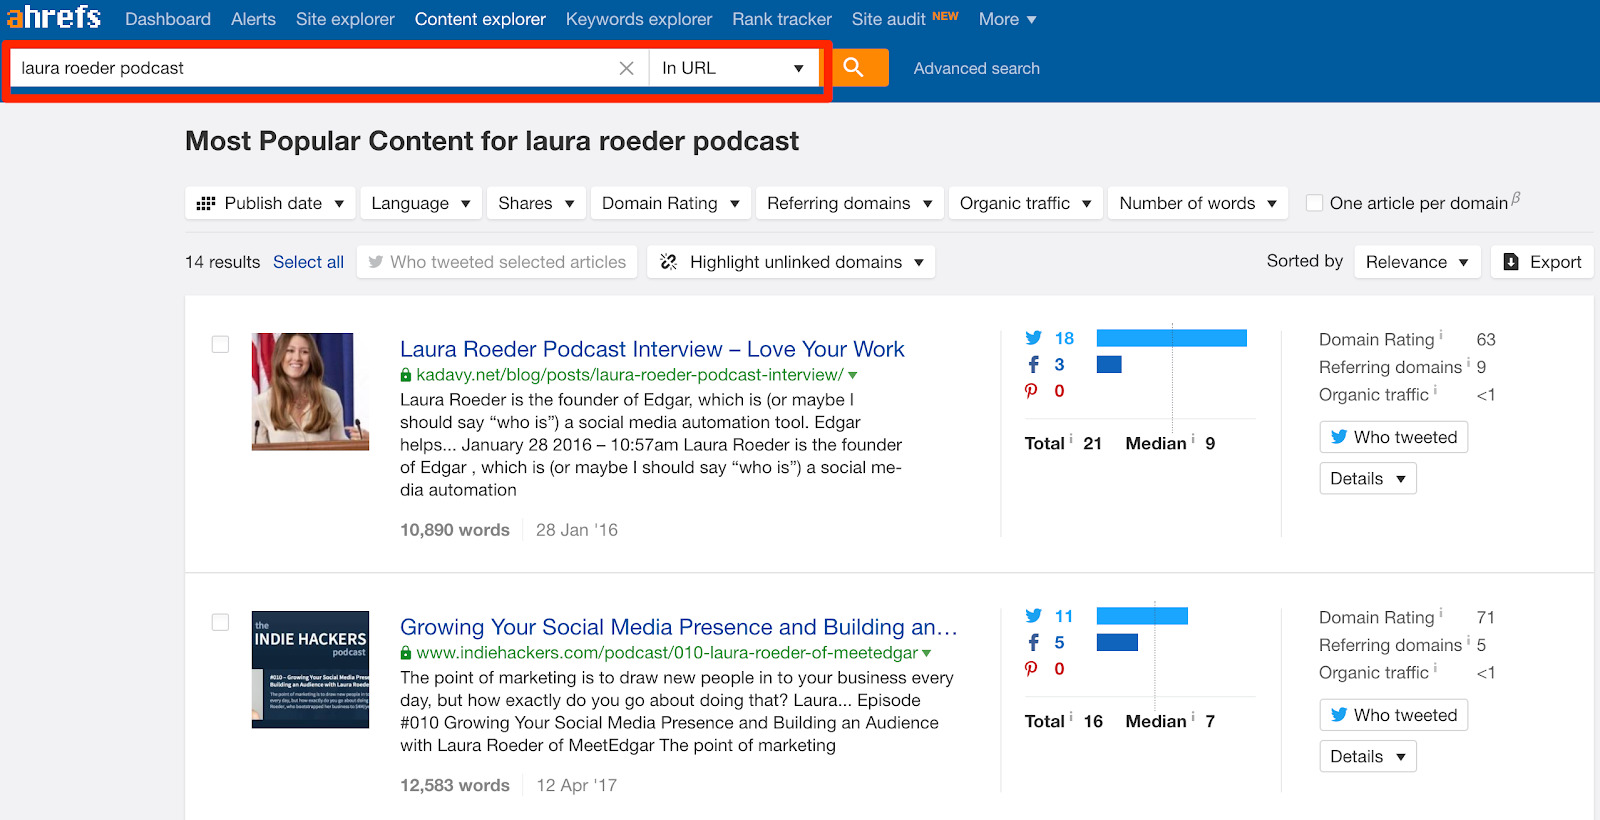 Laura Roeder Podcast Best Articles